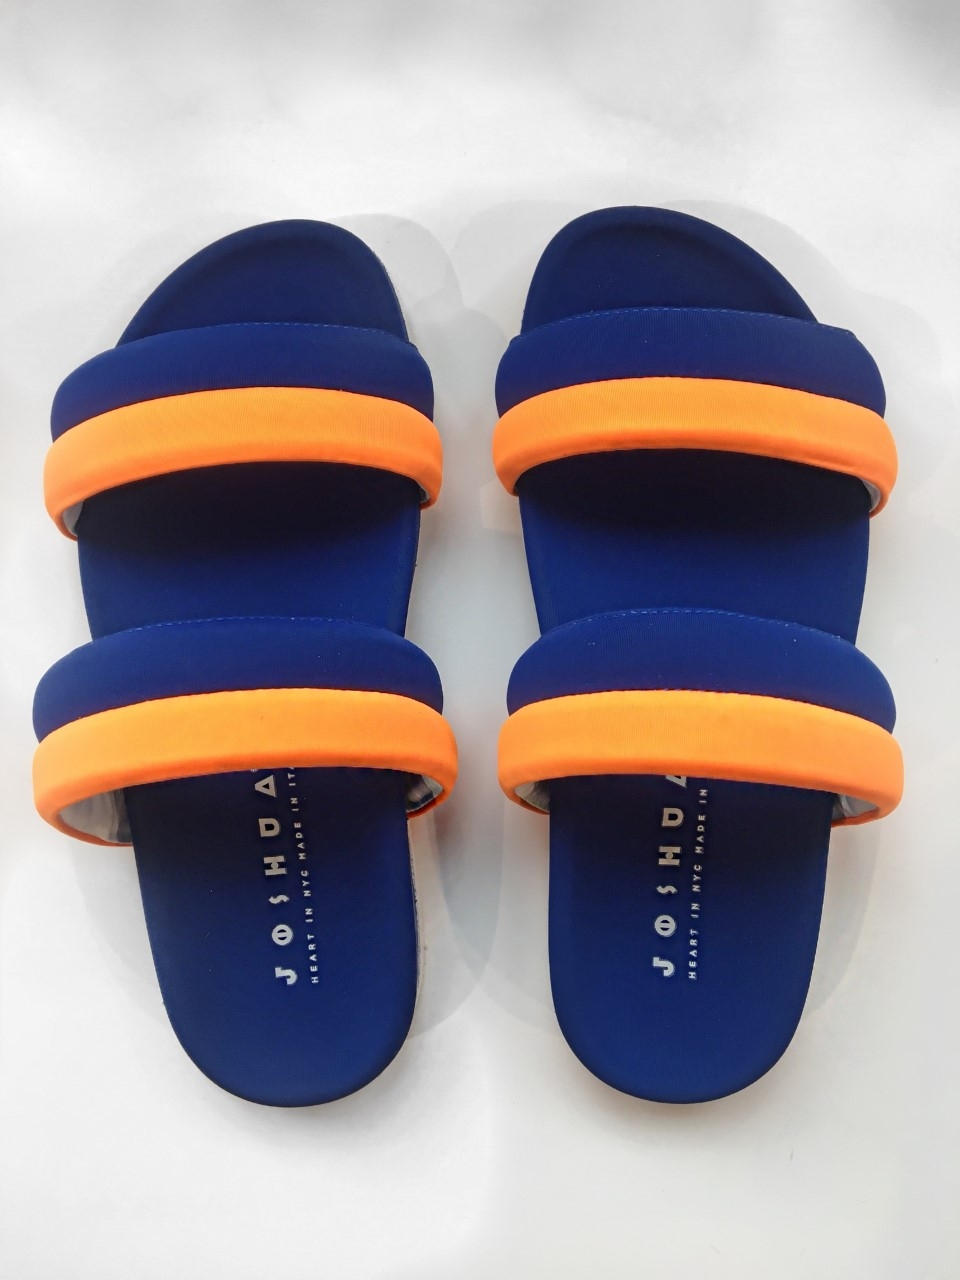 Joshua Sanders Sandaler Navy/Orange